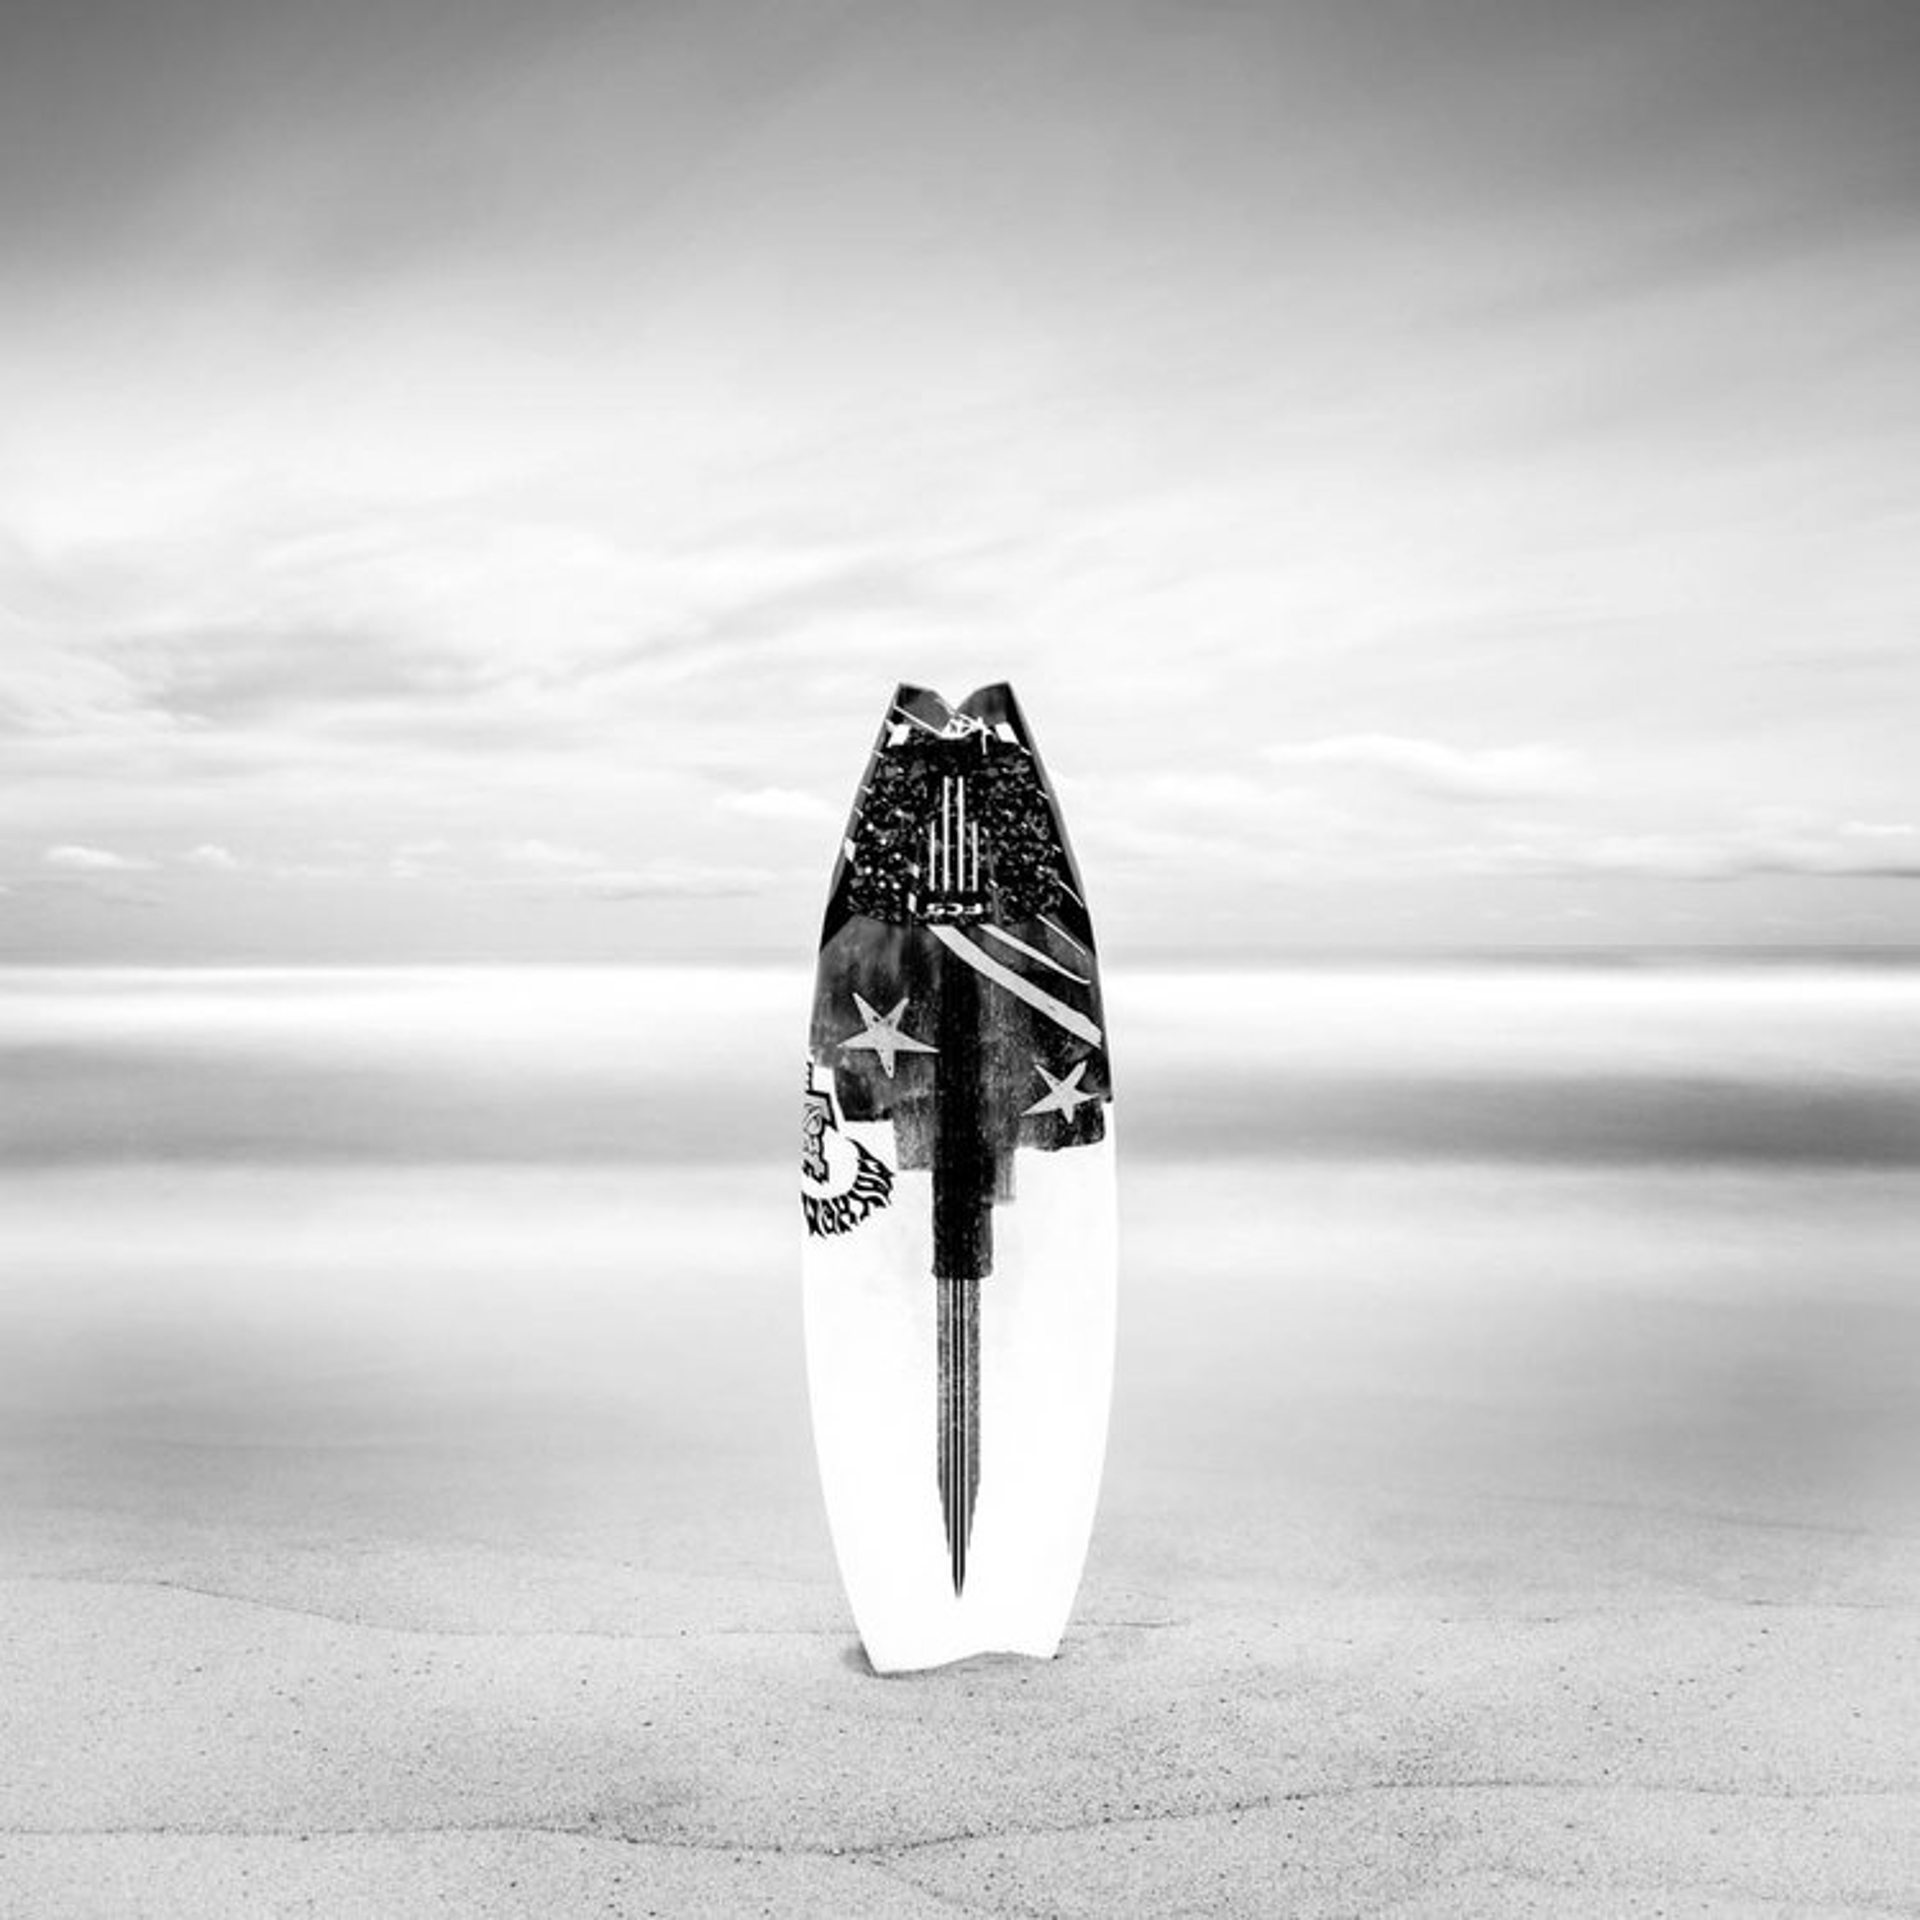 Surfboard at White Sands by Keith Ramsdell